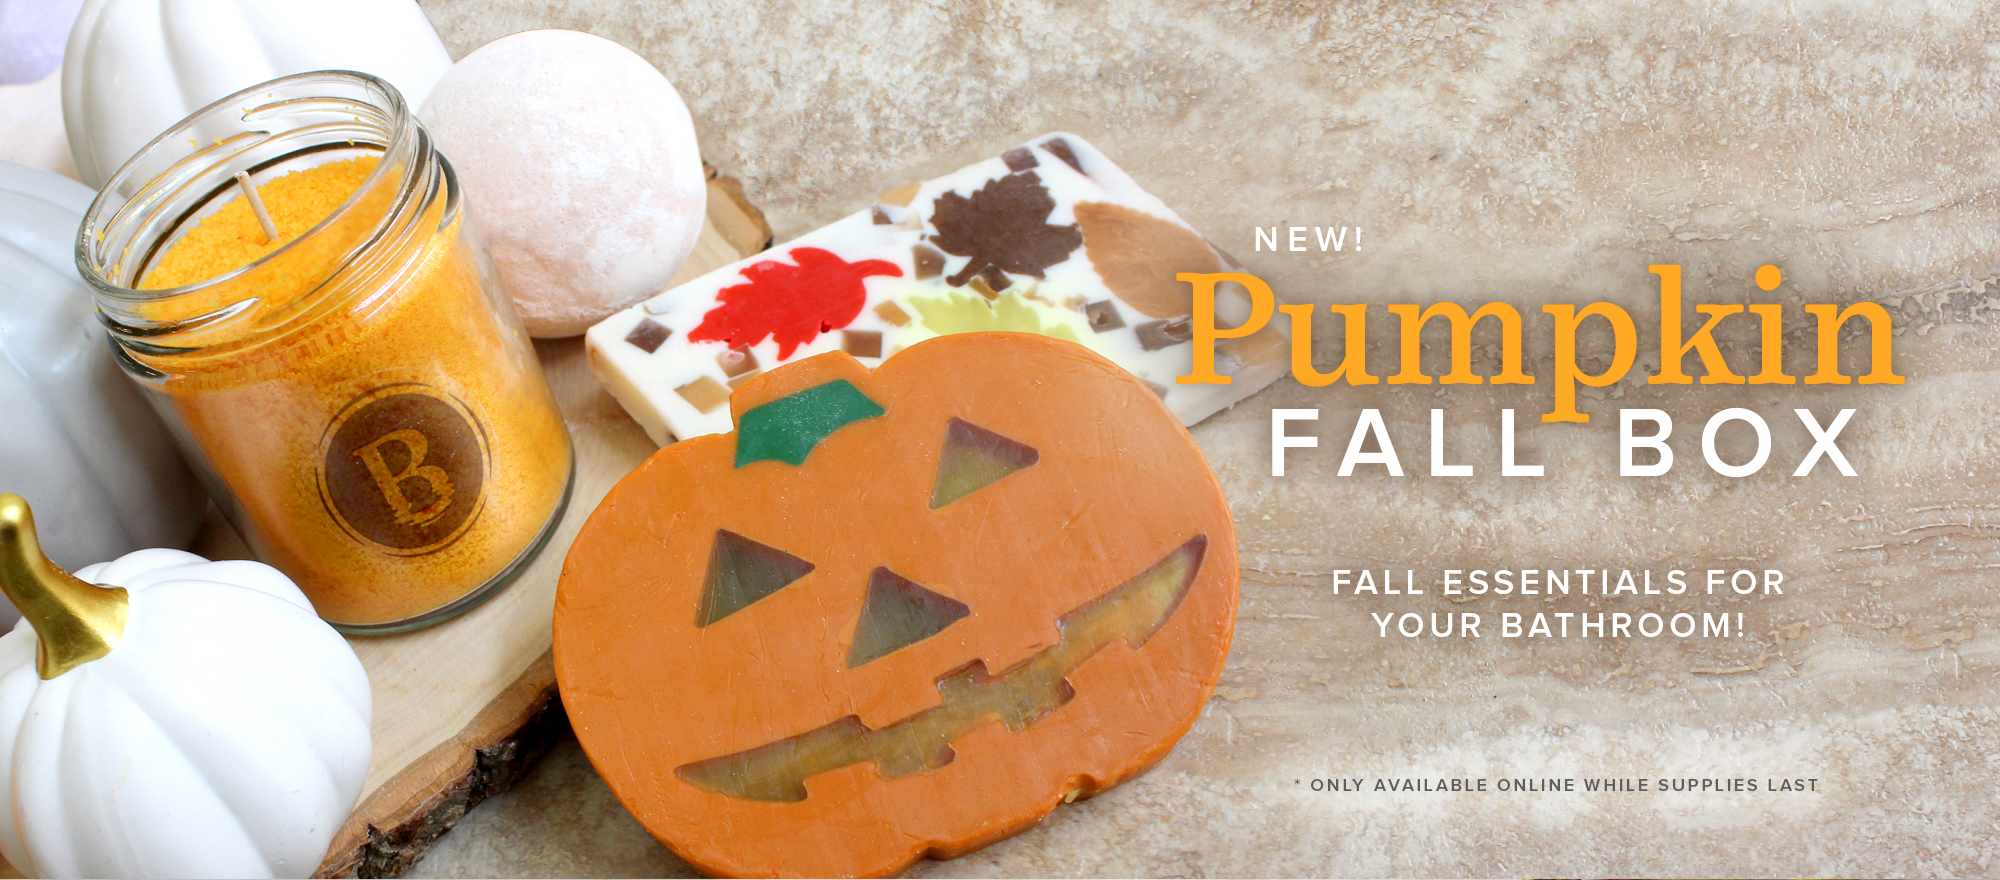 NEW! Pumpkin Fall Box